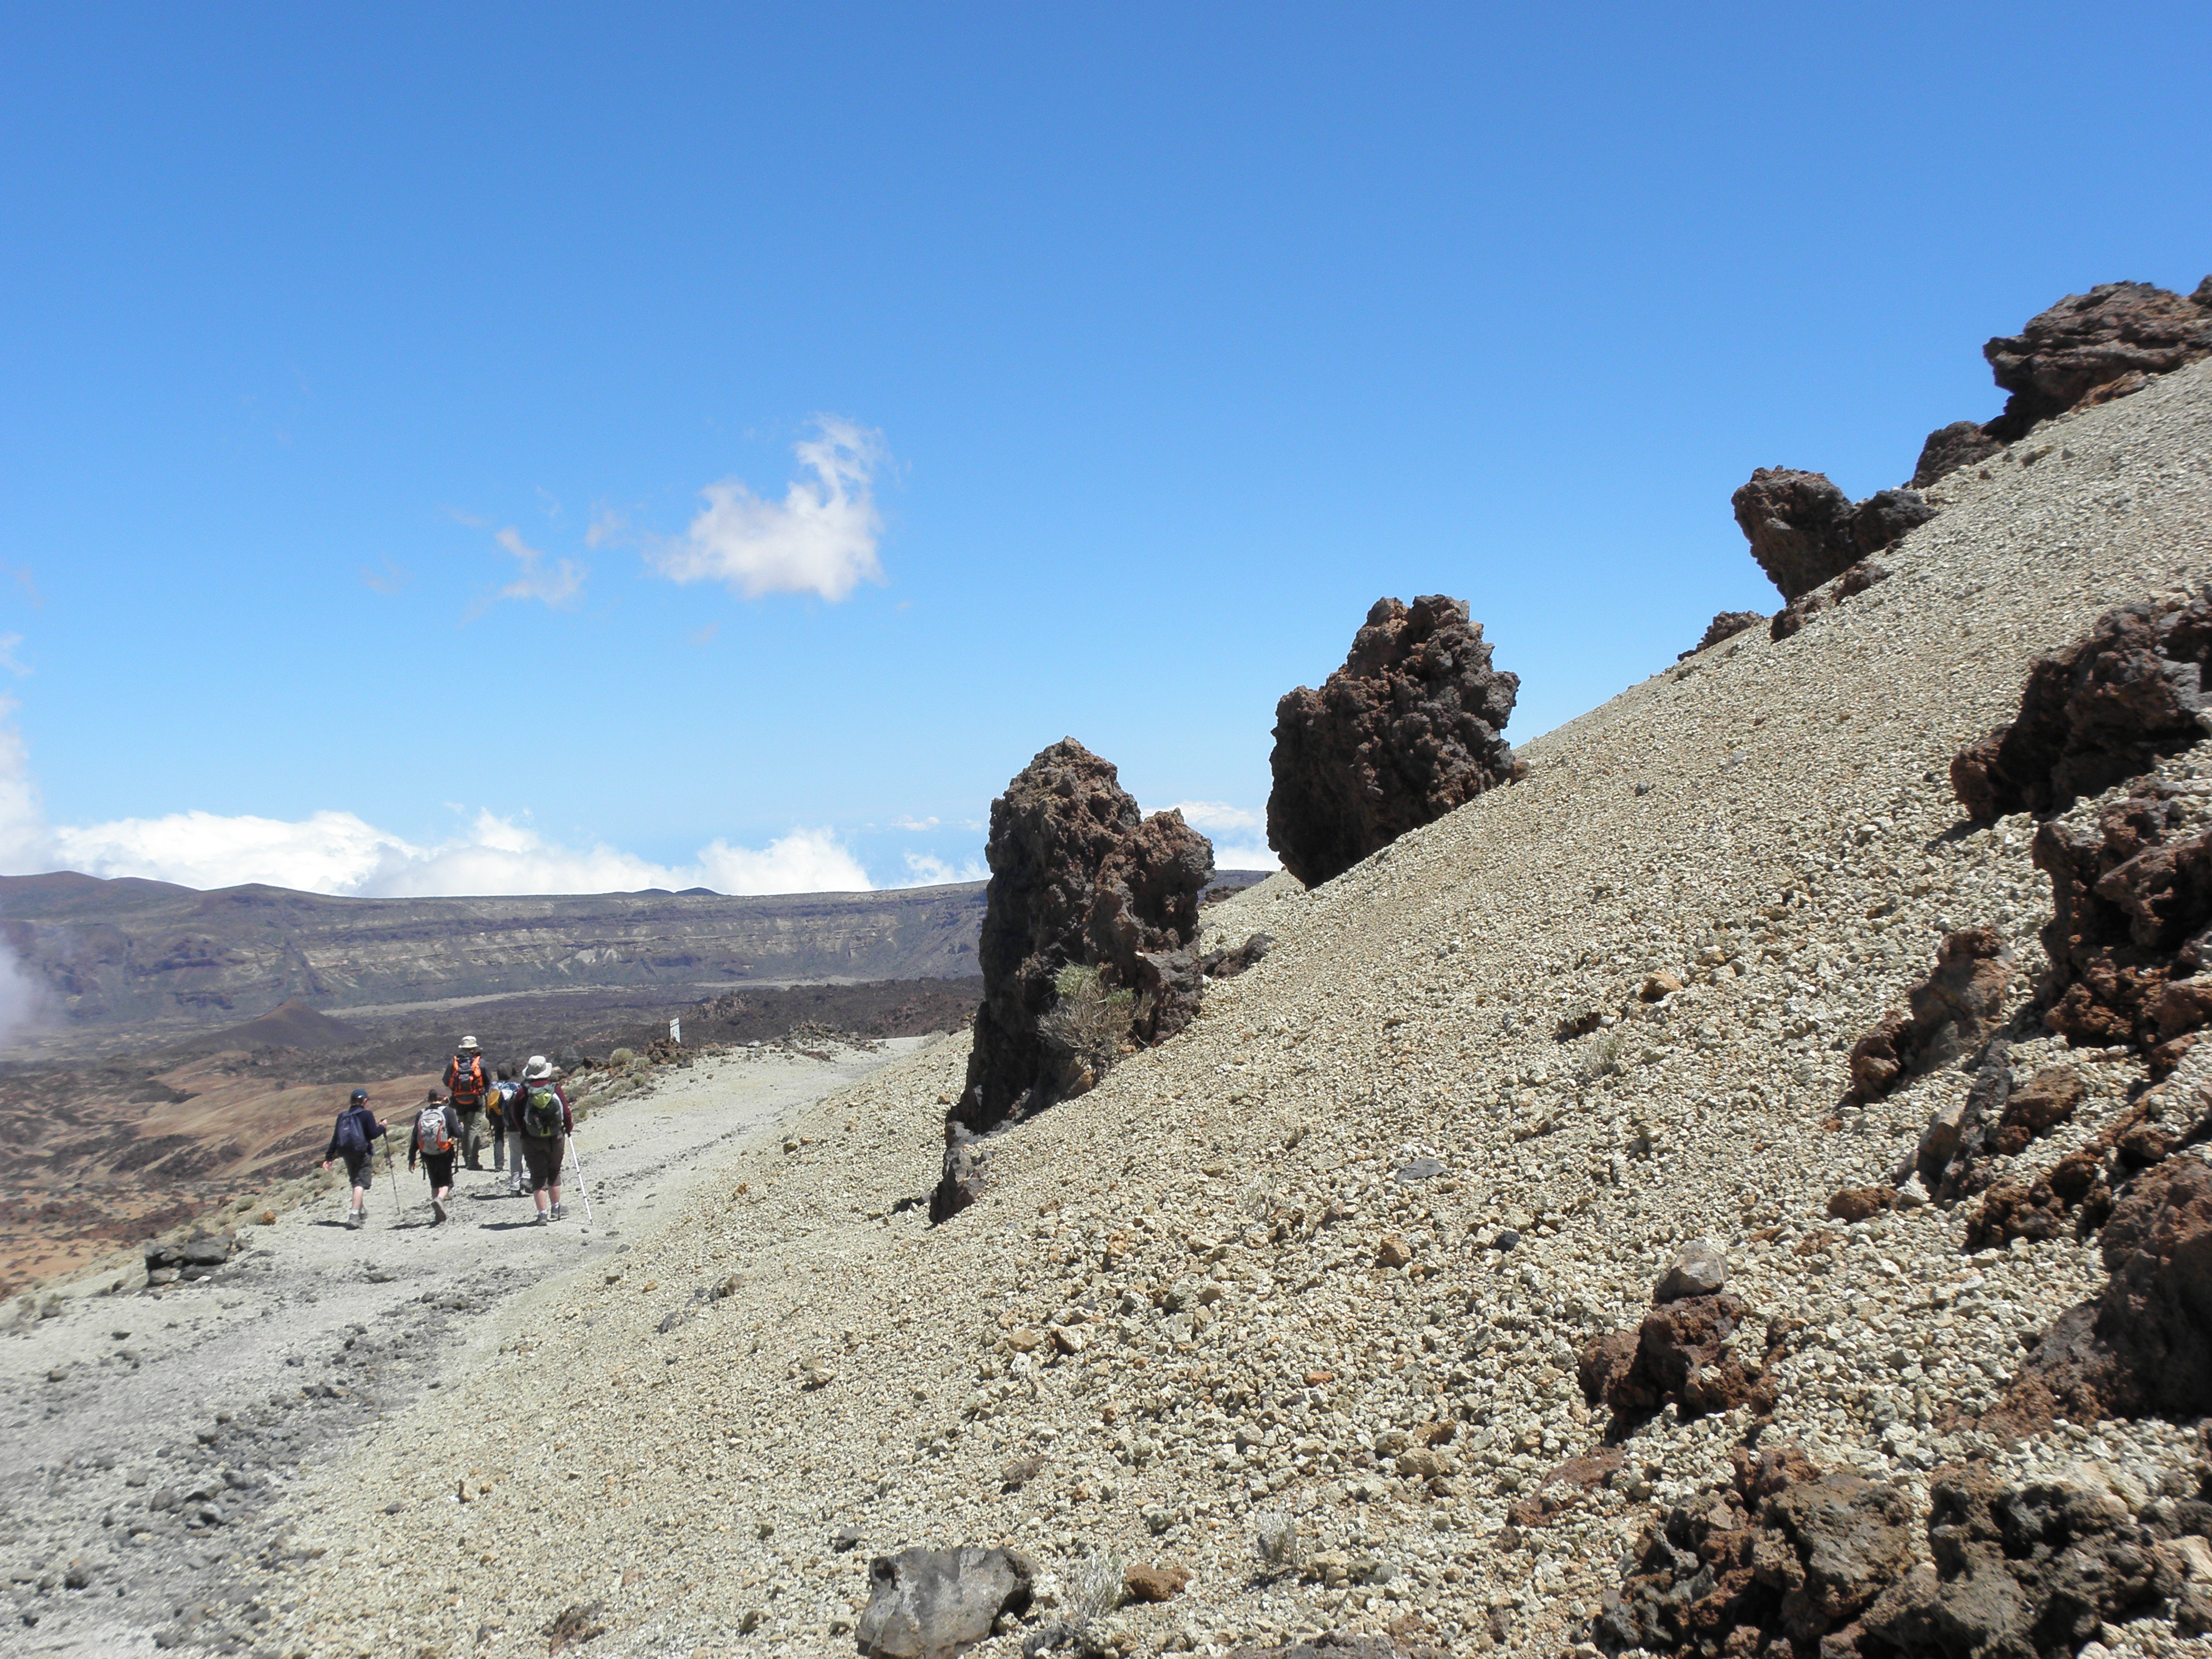 Group of walkers on pumice stones floor in the Teide national park